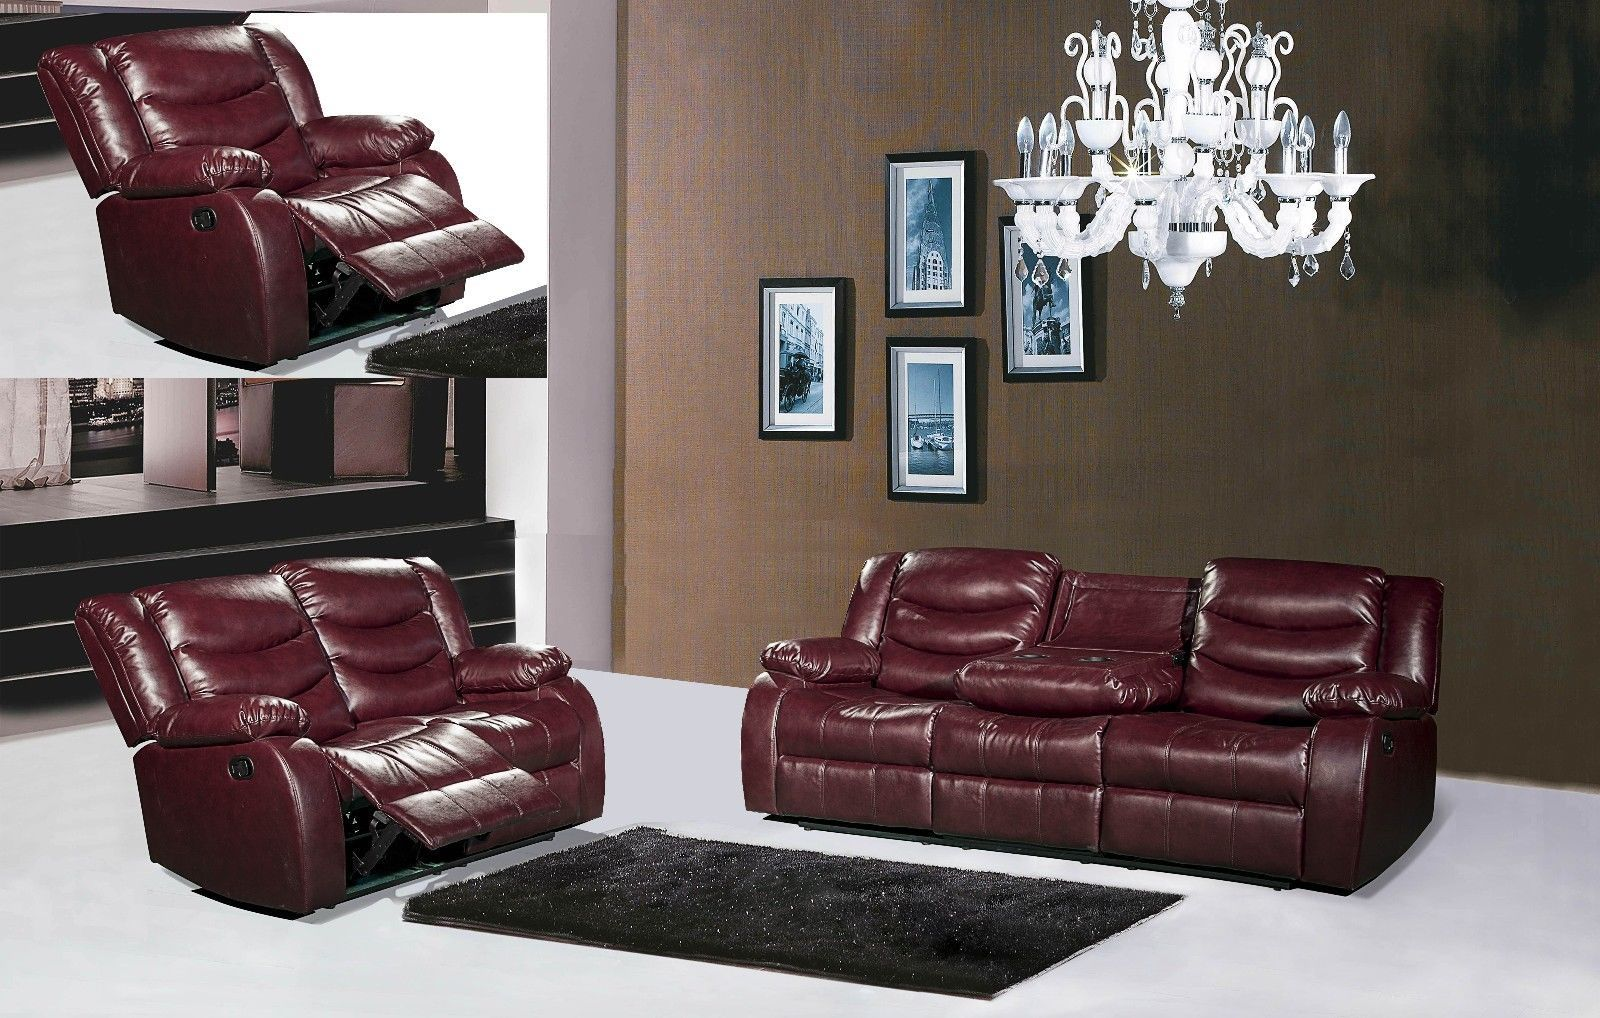 Meridian 644 Bonded Leather Living Room Sofa Set 2pc.Burgundy Contemporary Style